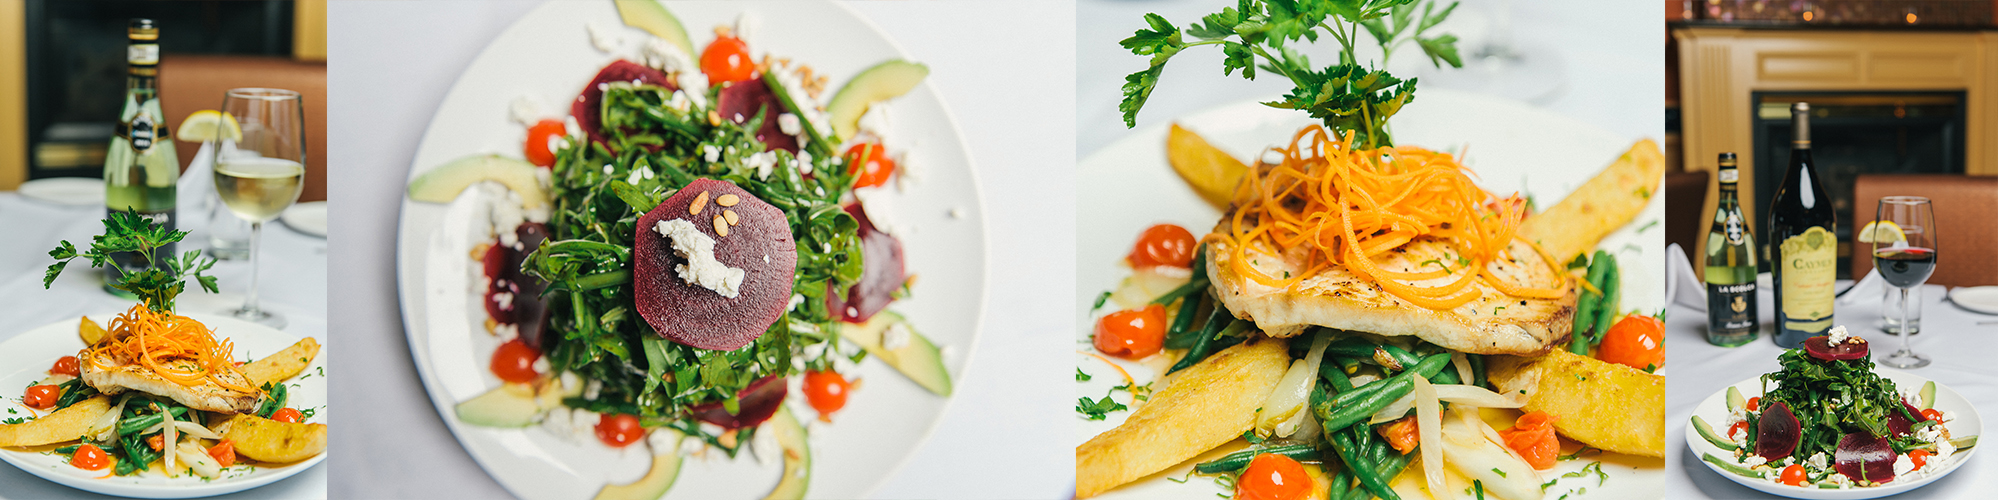 Two different vibrant dishes